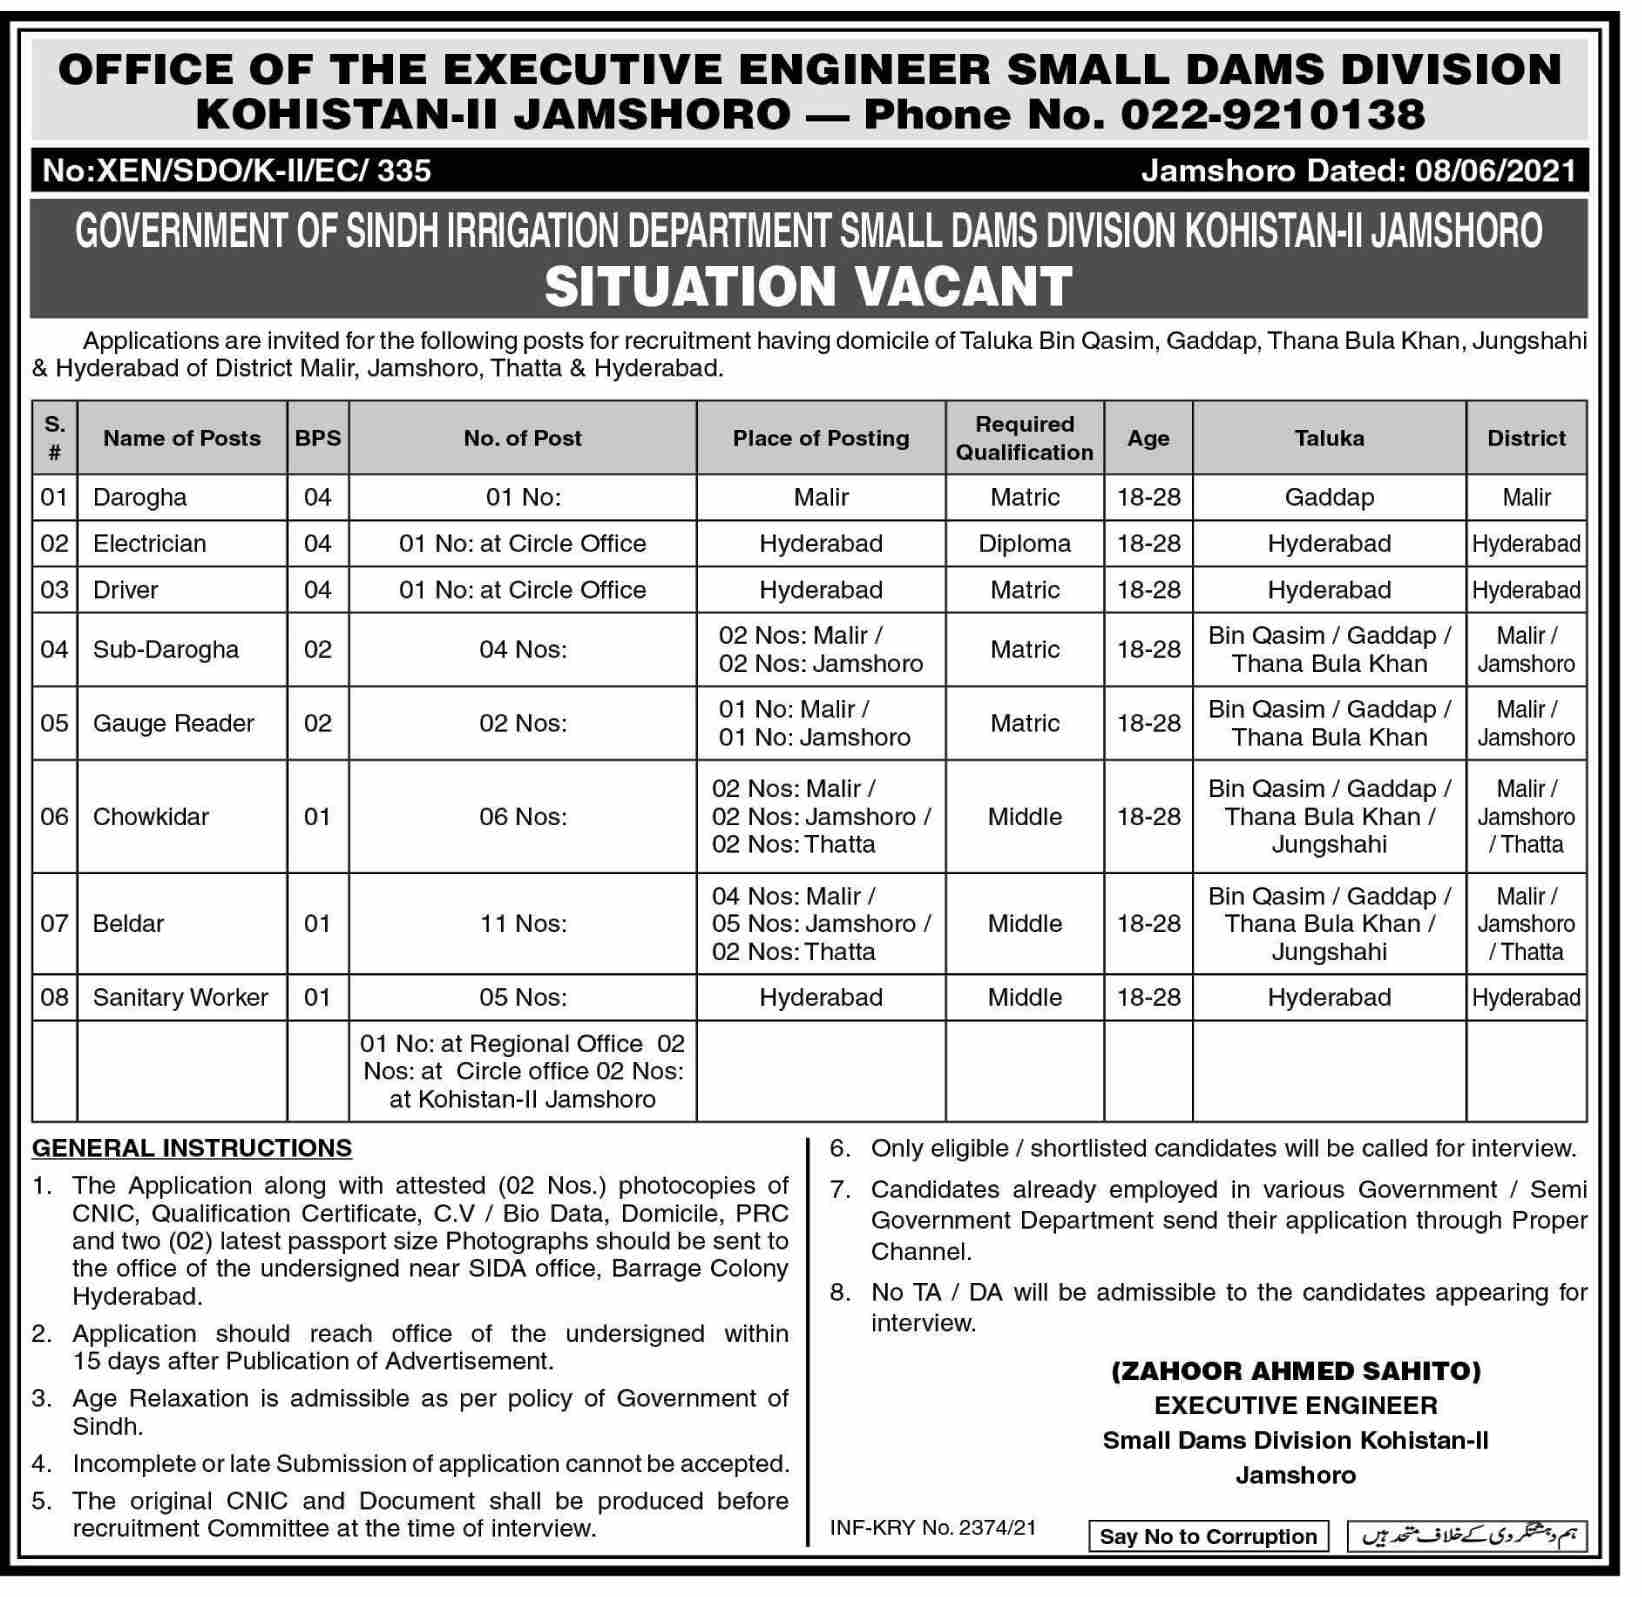 Office of the Executive Engineer Small Dams Division Jamshoro Jobs 2021 in Pakistan - Latest Government Jobs in Sindh 2021